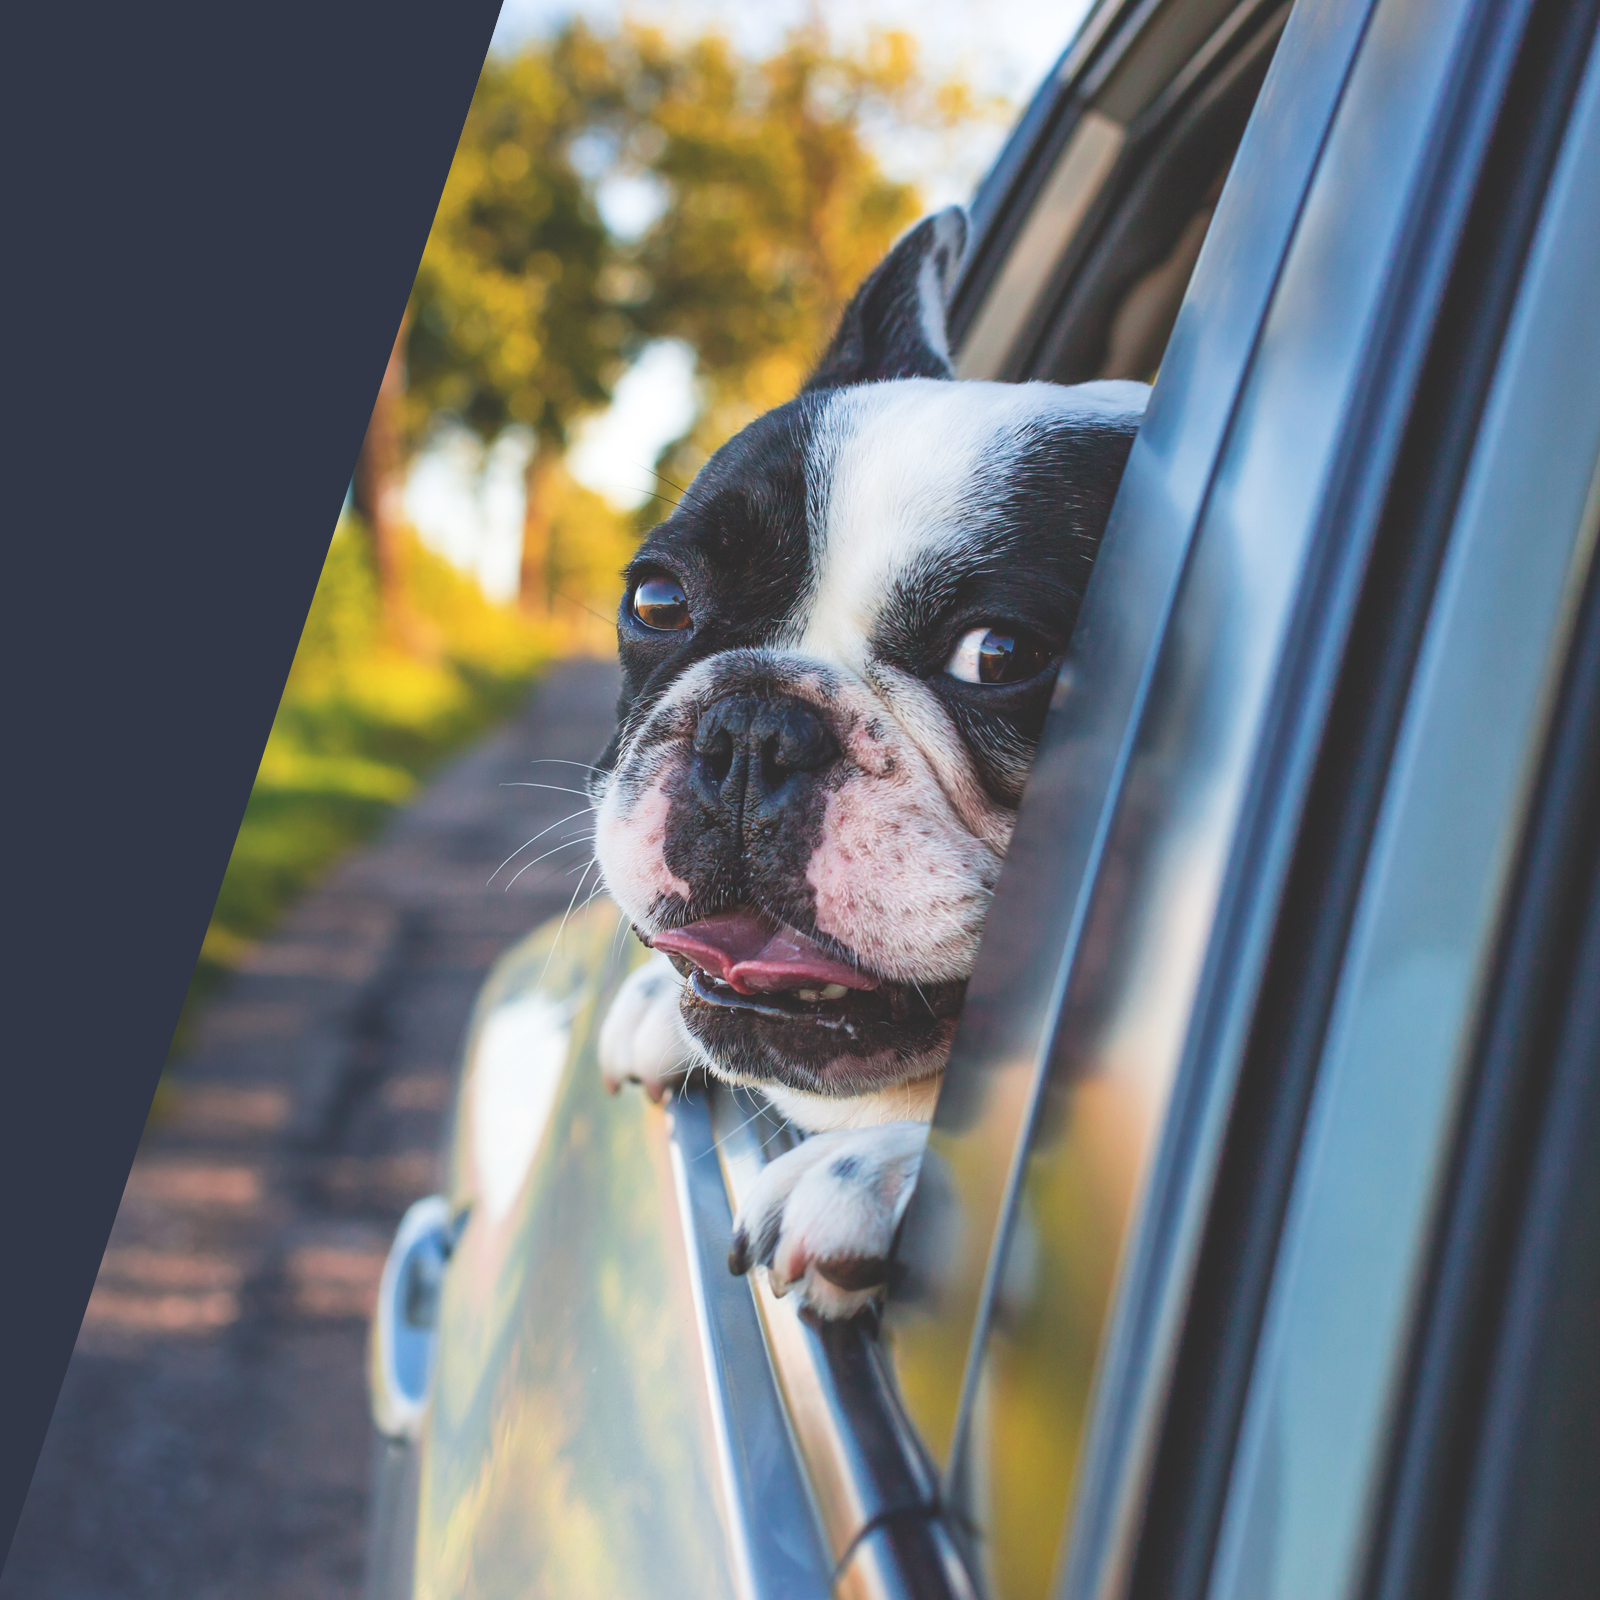 car insurance in spain, costa blanca dog hanging out window